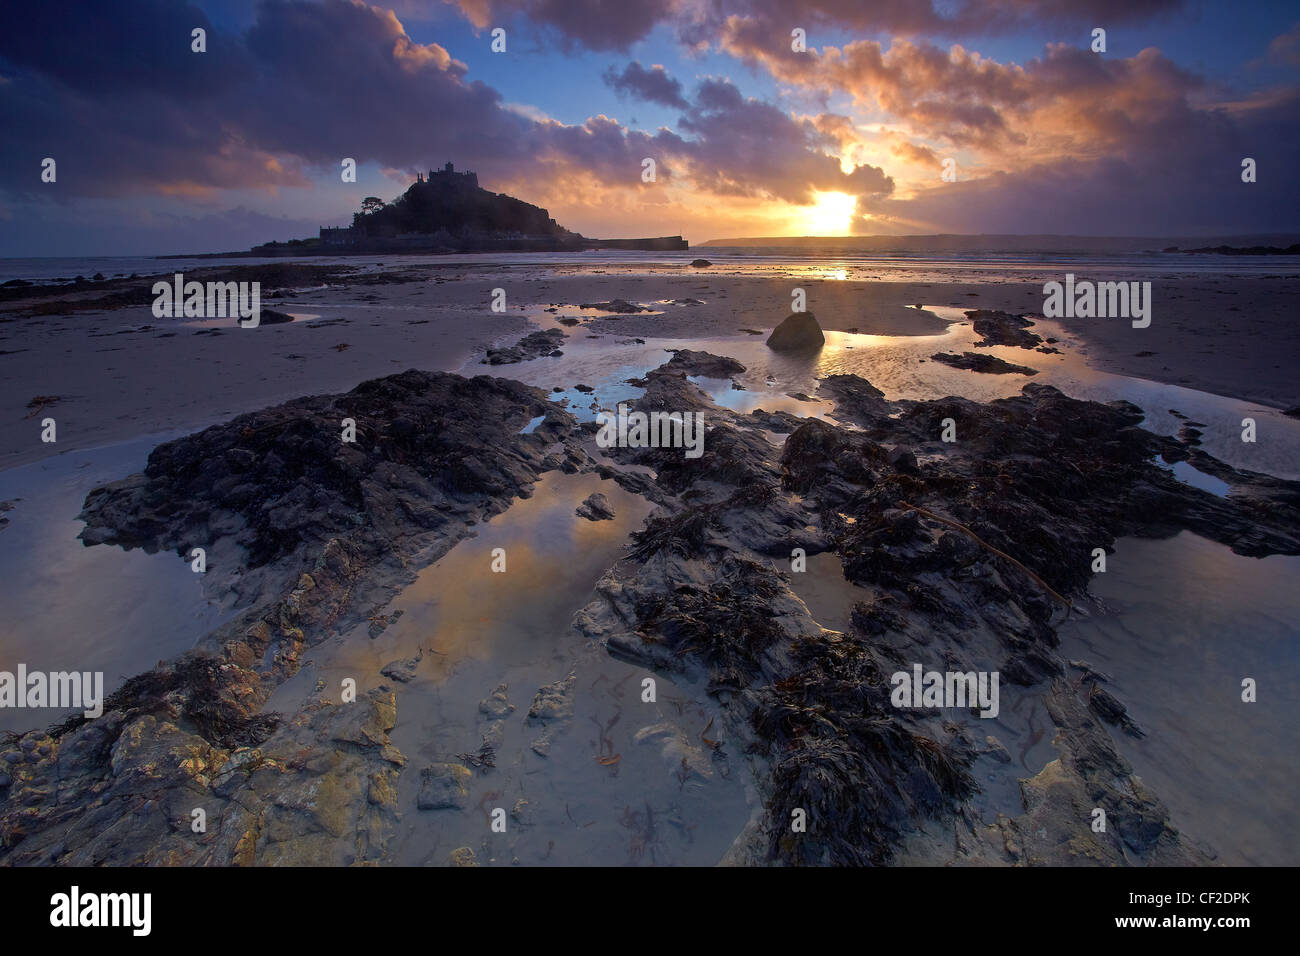 Sunset over St Michaels Mount in Mount's Bay from the beach at Marazion. - Stock Image